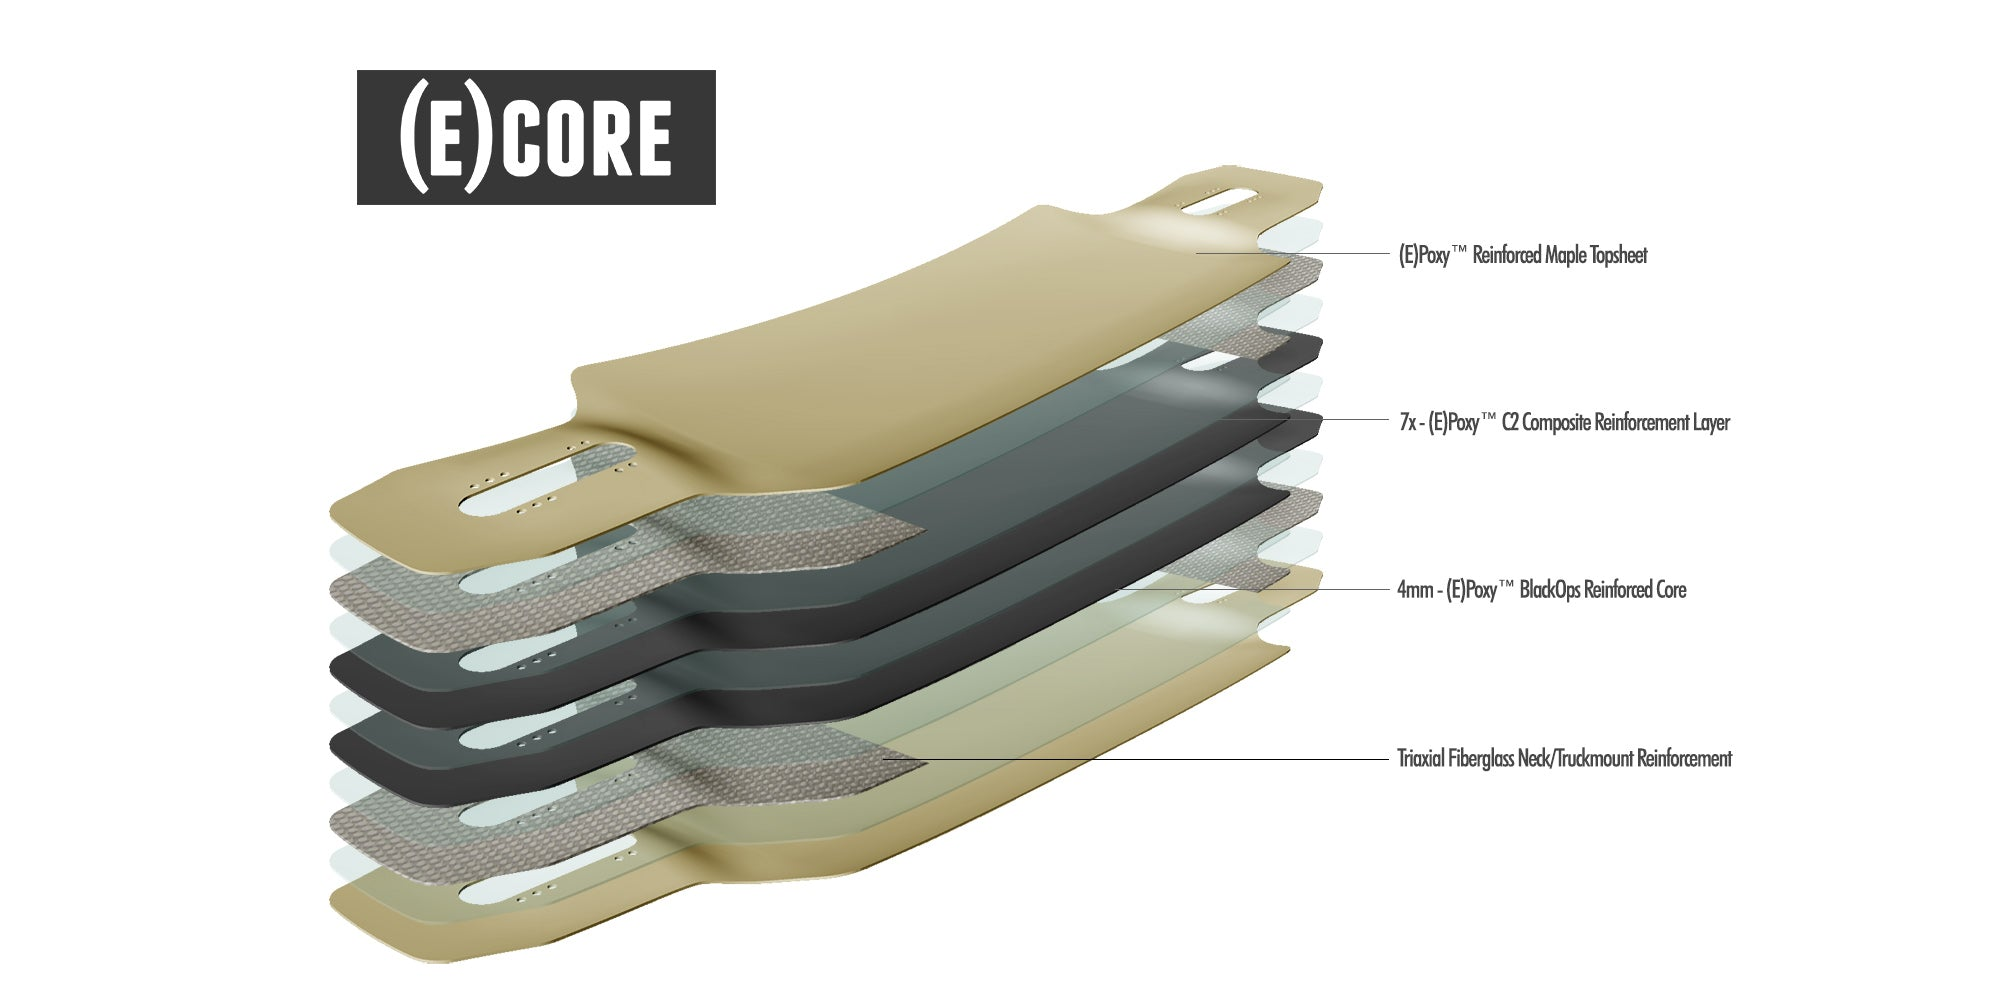 maestro ecore construction composite longboard design